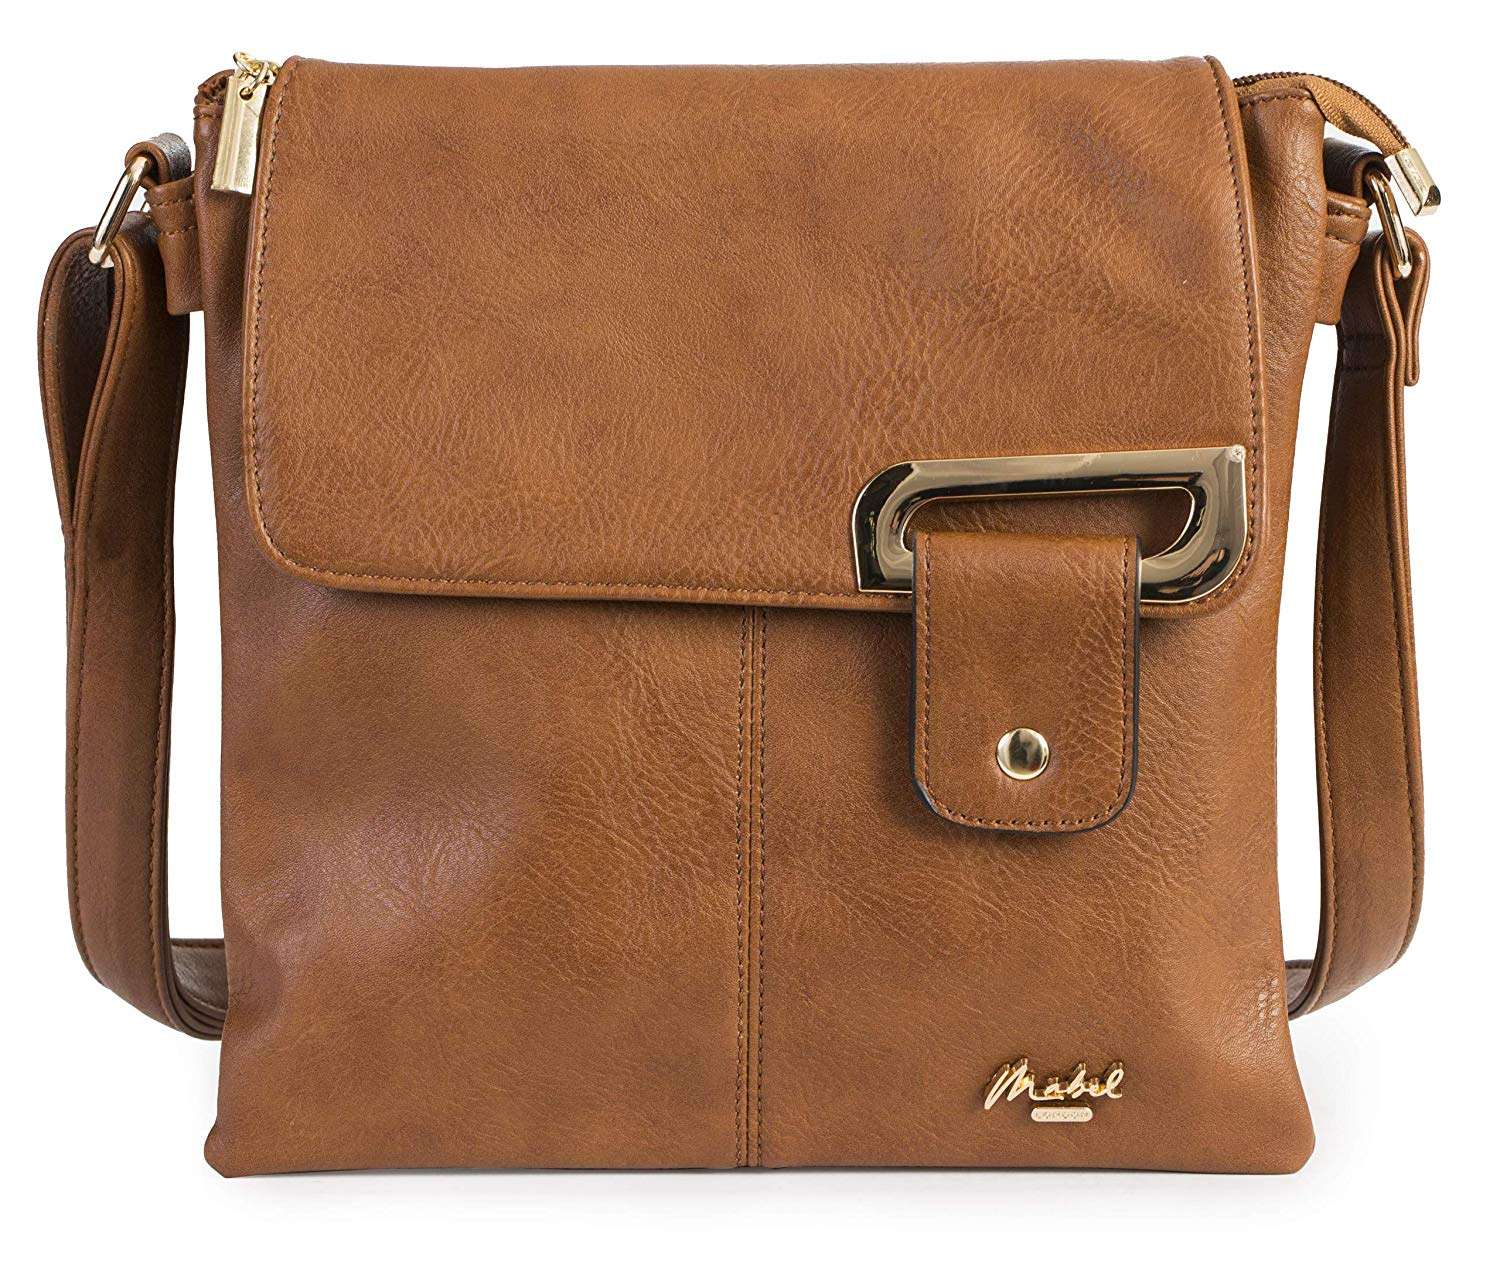 a3f5a9499d83 Womens Medium Trendy Messenger Cross-Body Shoulder Bag With a Branded  Protective Storage Bag - FAITH